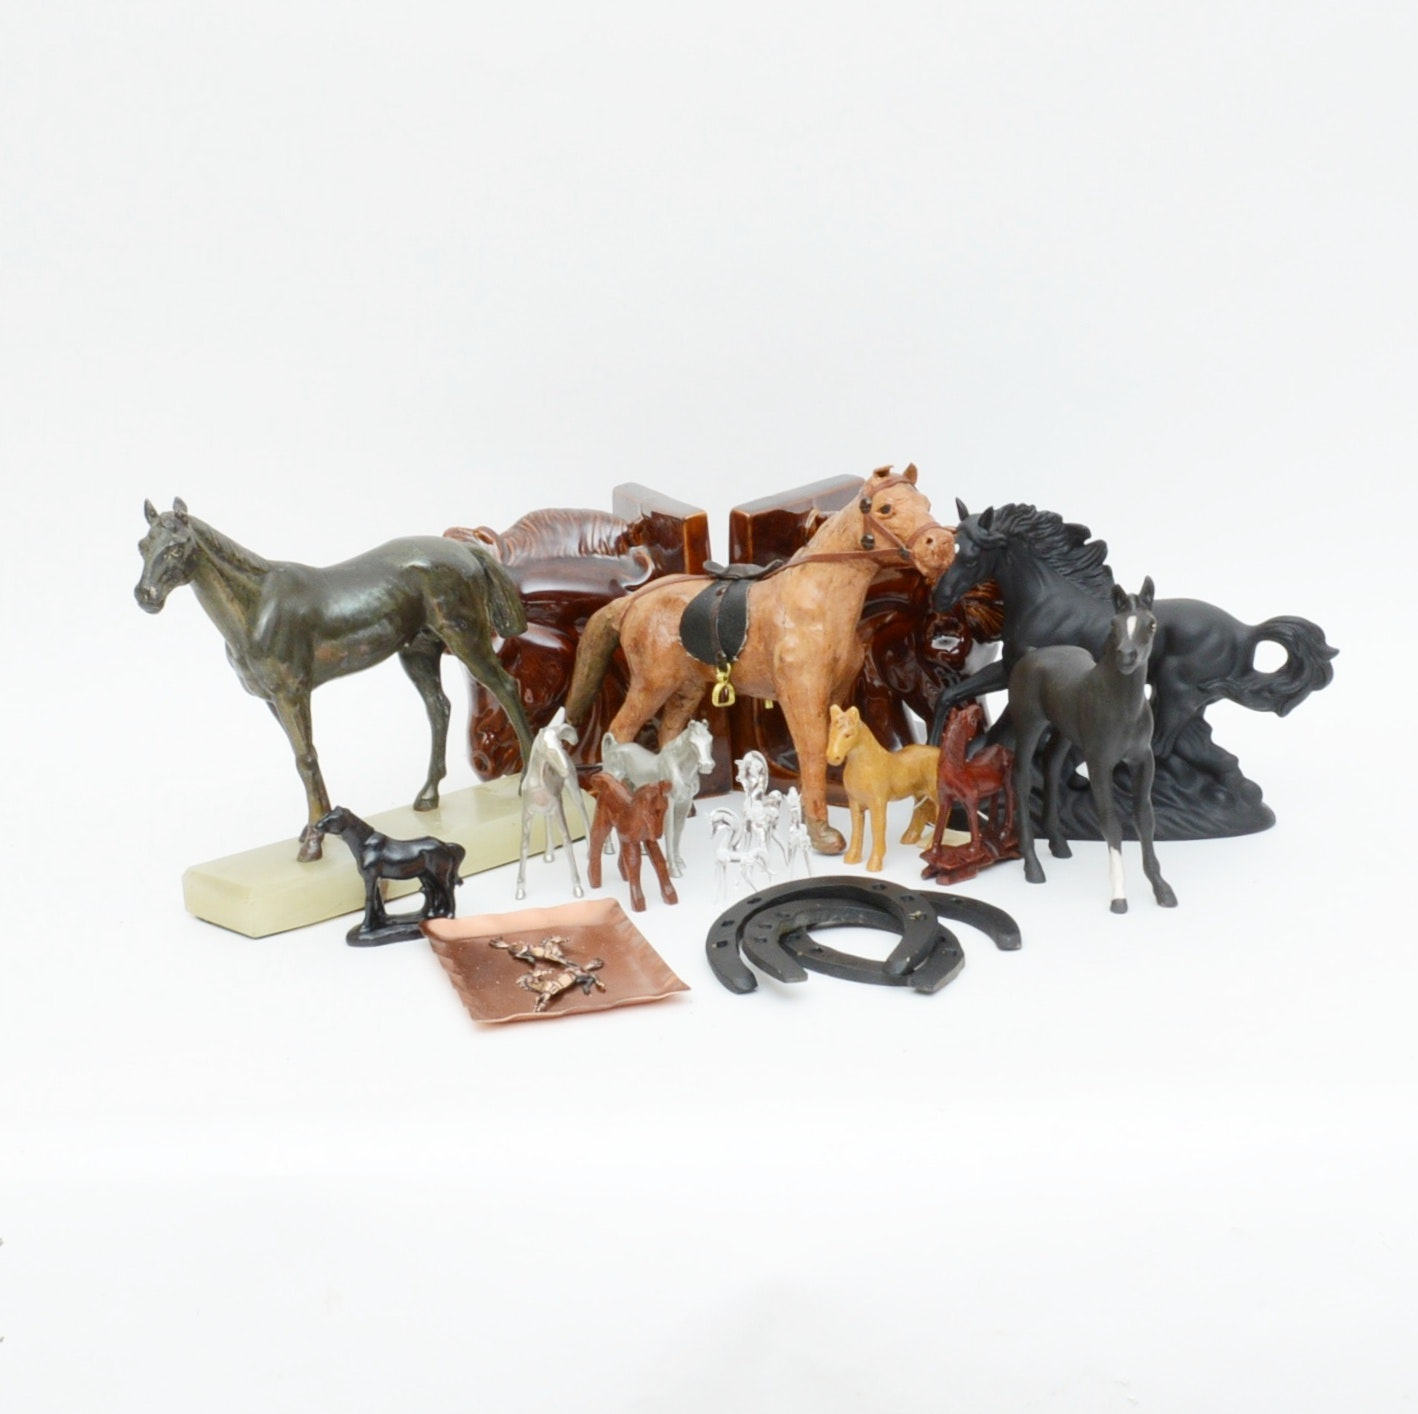 Collection of Horse Figurines and Decor